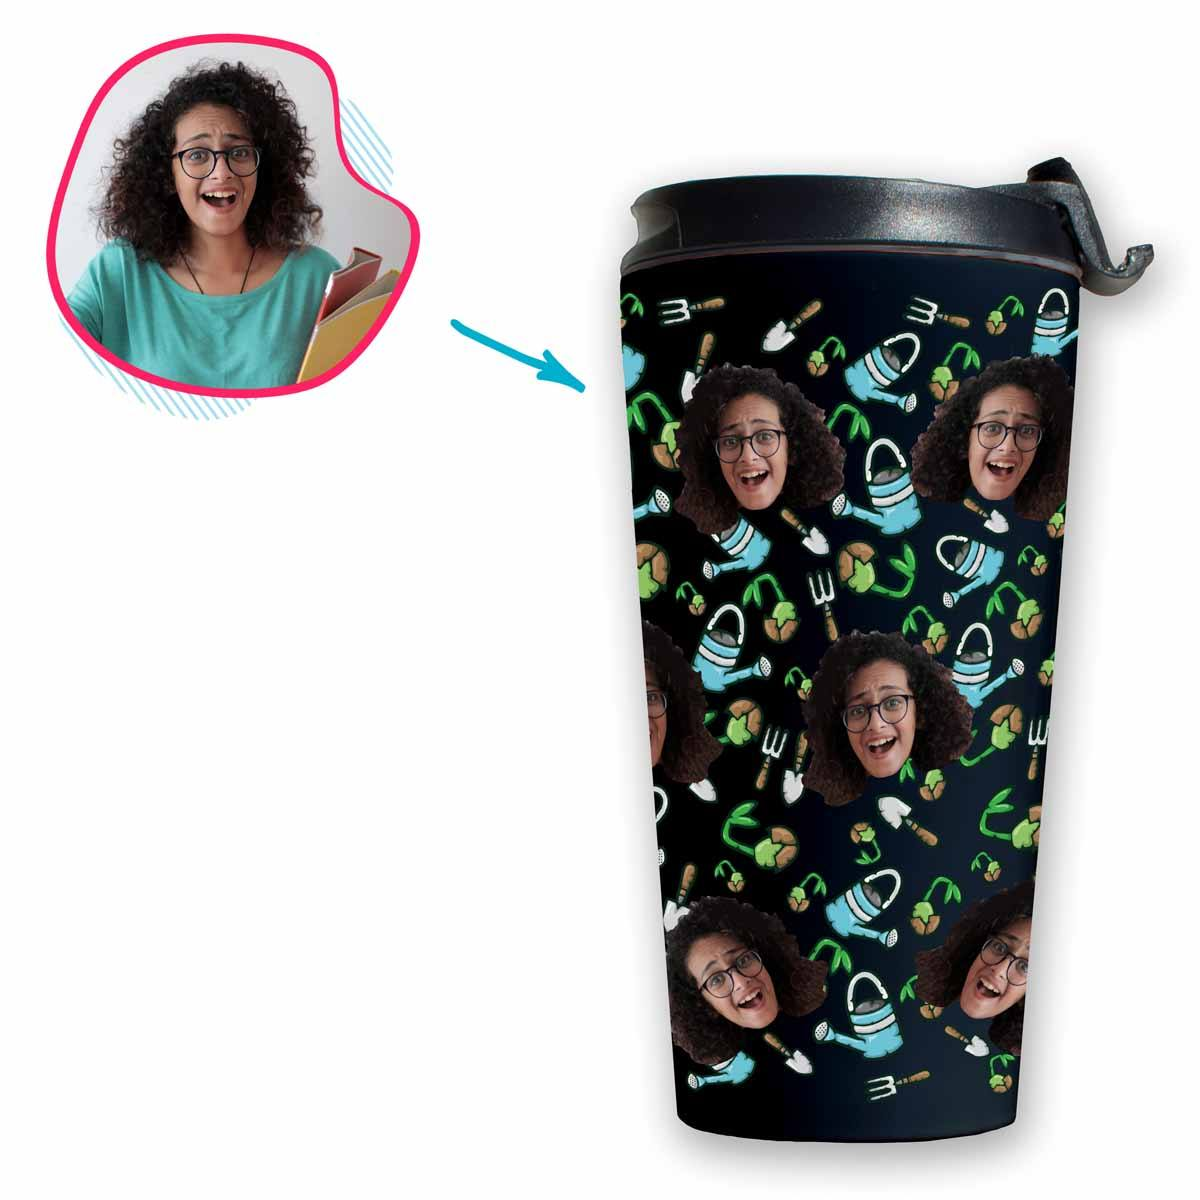 dark Gardening travel mug personalized with photo of face printed on it